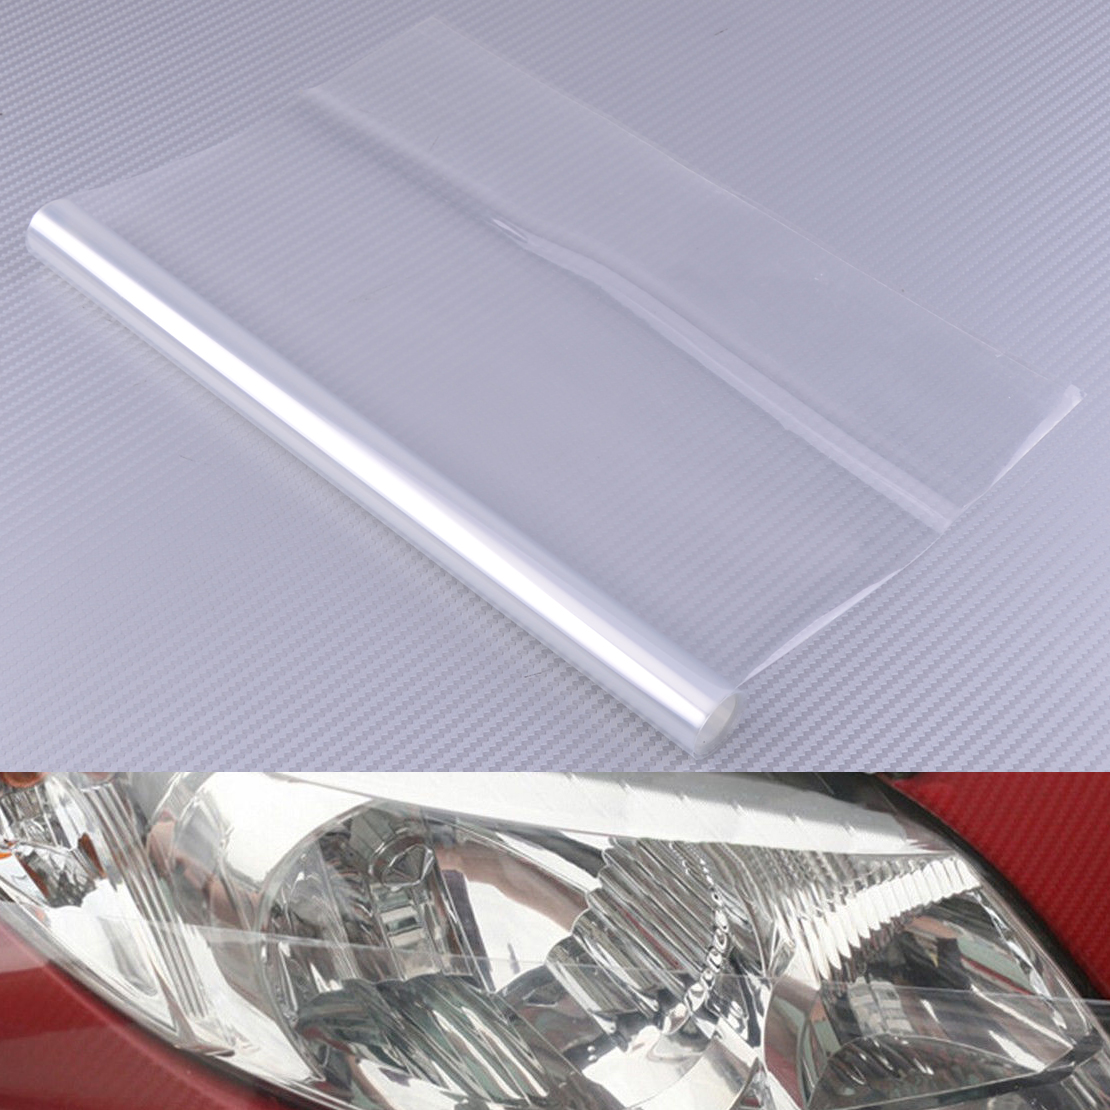 DWCX 1Pc Car Clear Waterproof Transpatent Headlight Brake Tail Lamp Protection Vinyl Film Sheet Wrap Decal Cover 30 X 100cm